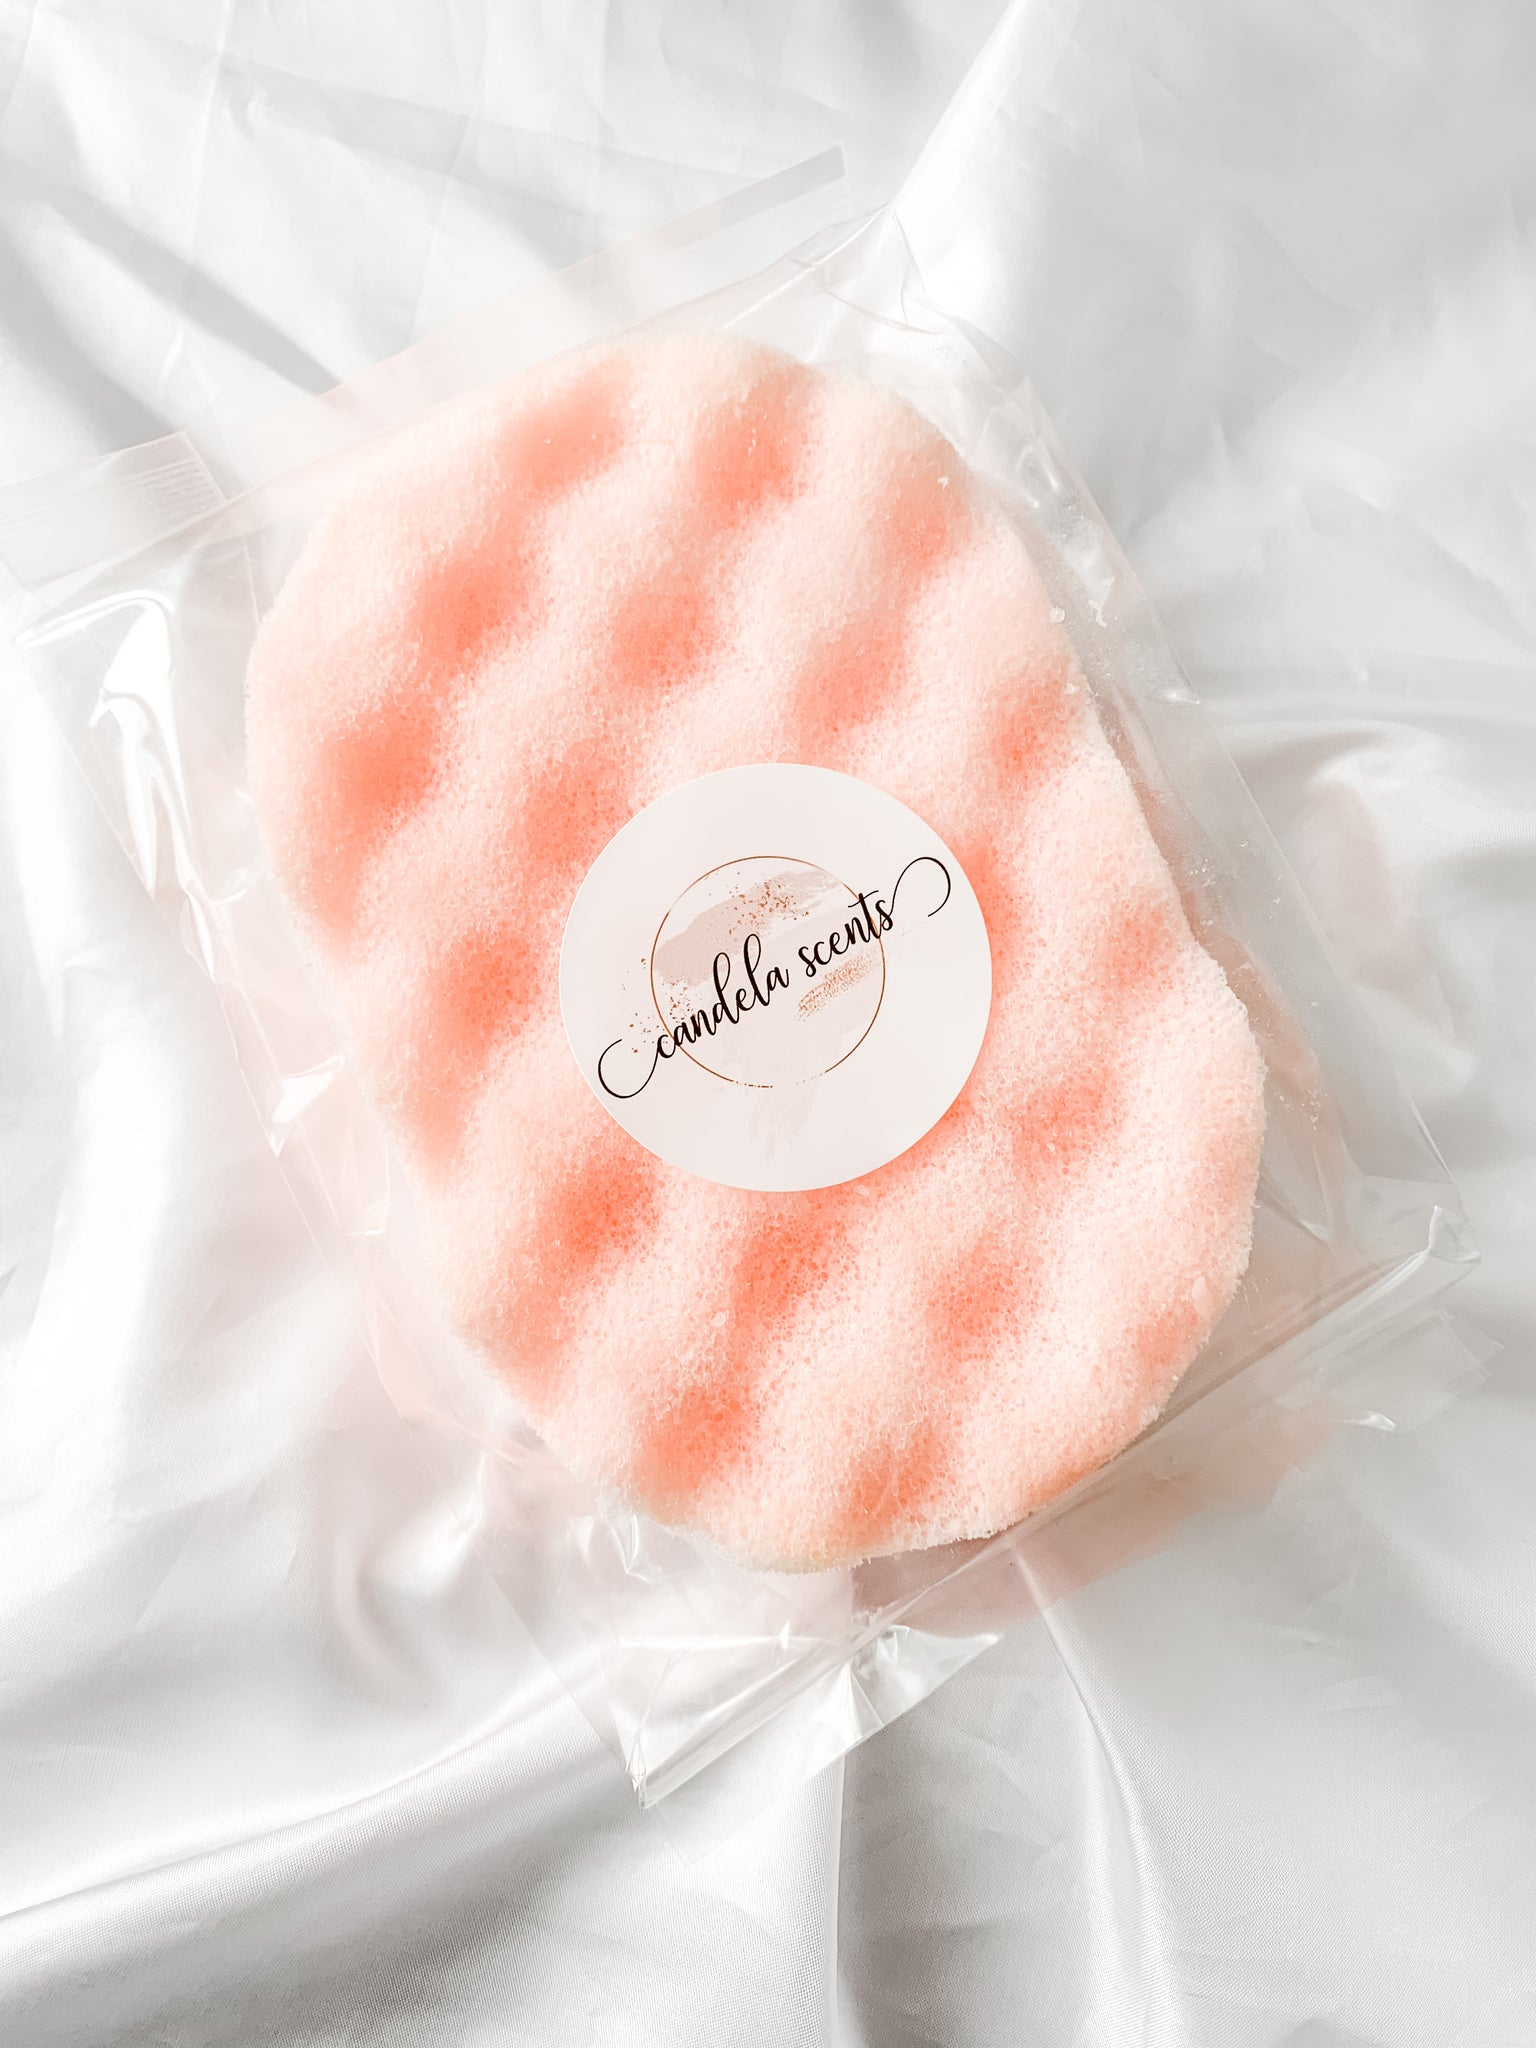 Madam (Inspired By Mademoiselle) Exfoliating Soap Sponge